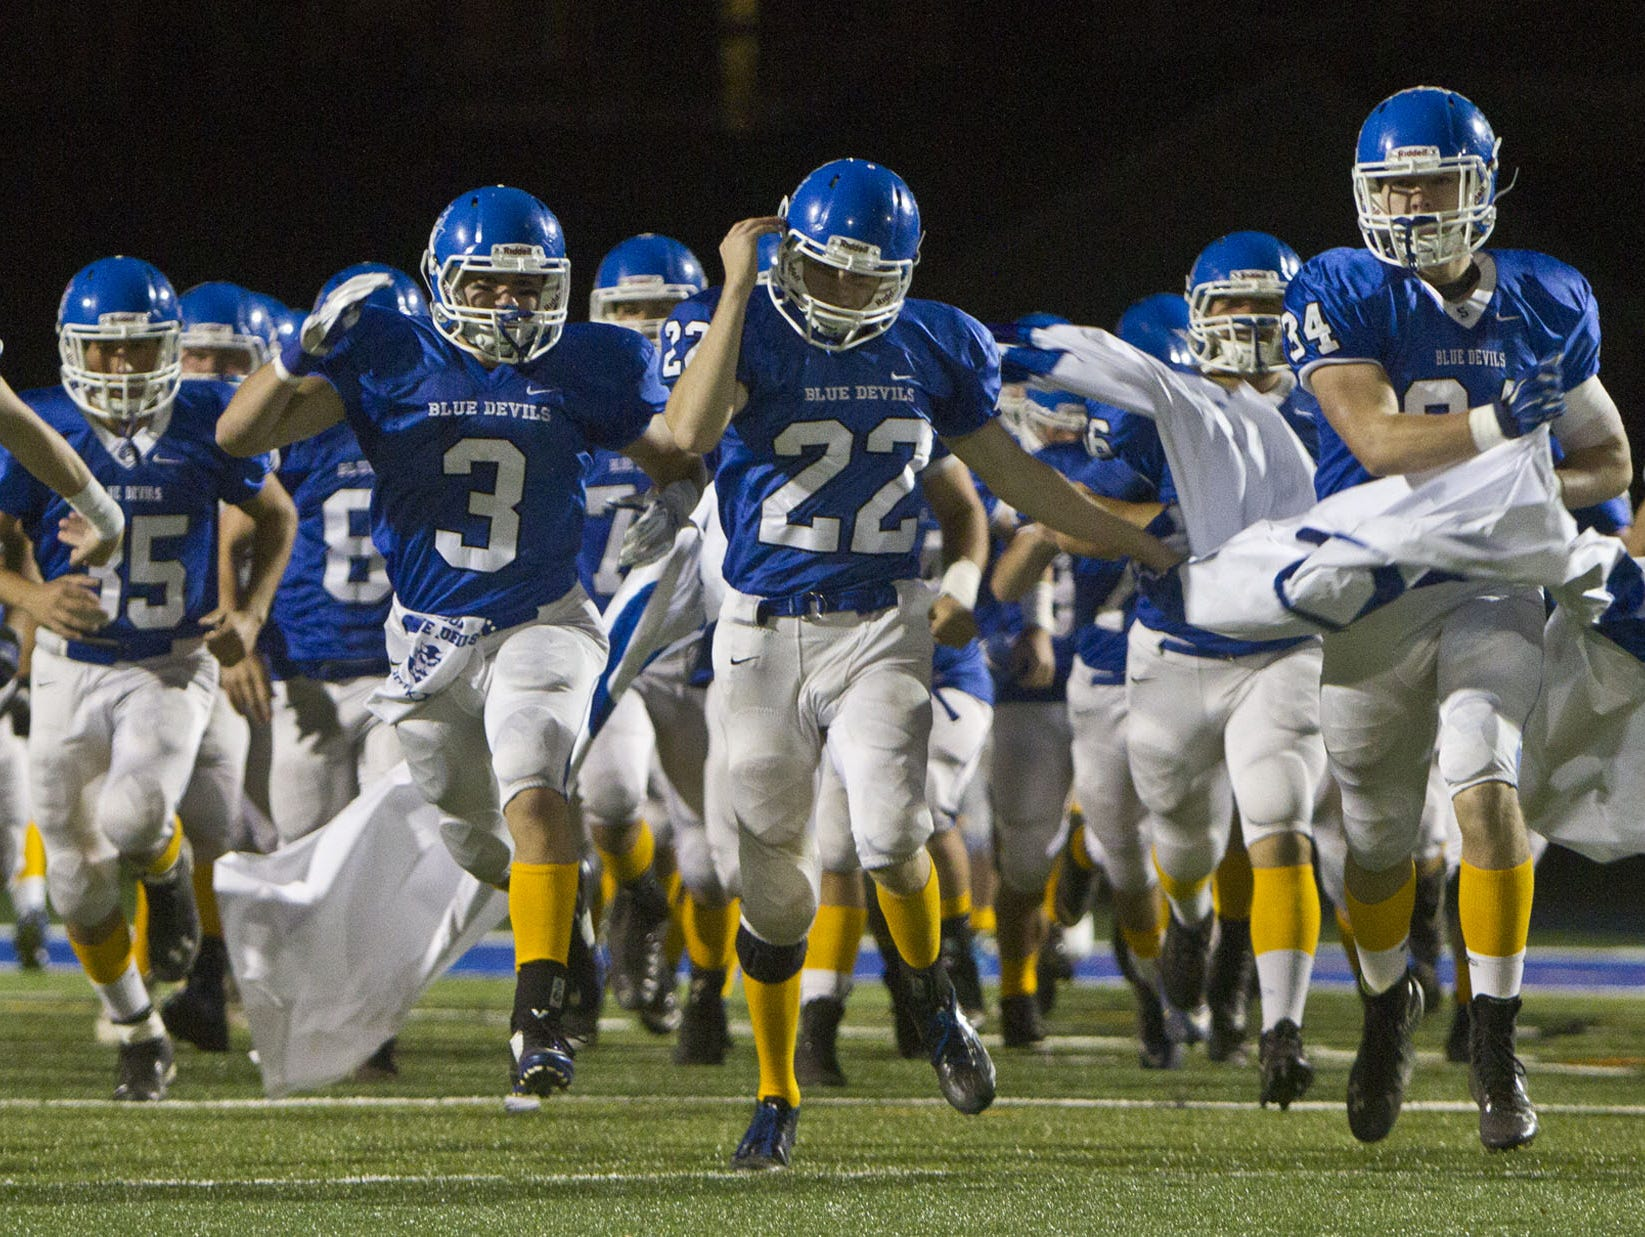 Shore Regional is our pick to win the NJSIAA Central Group I champiionship